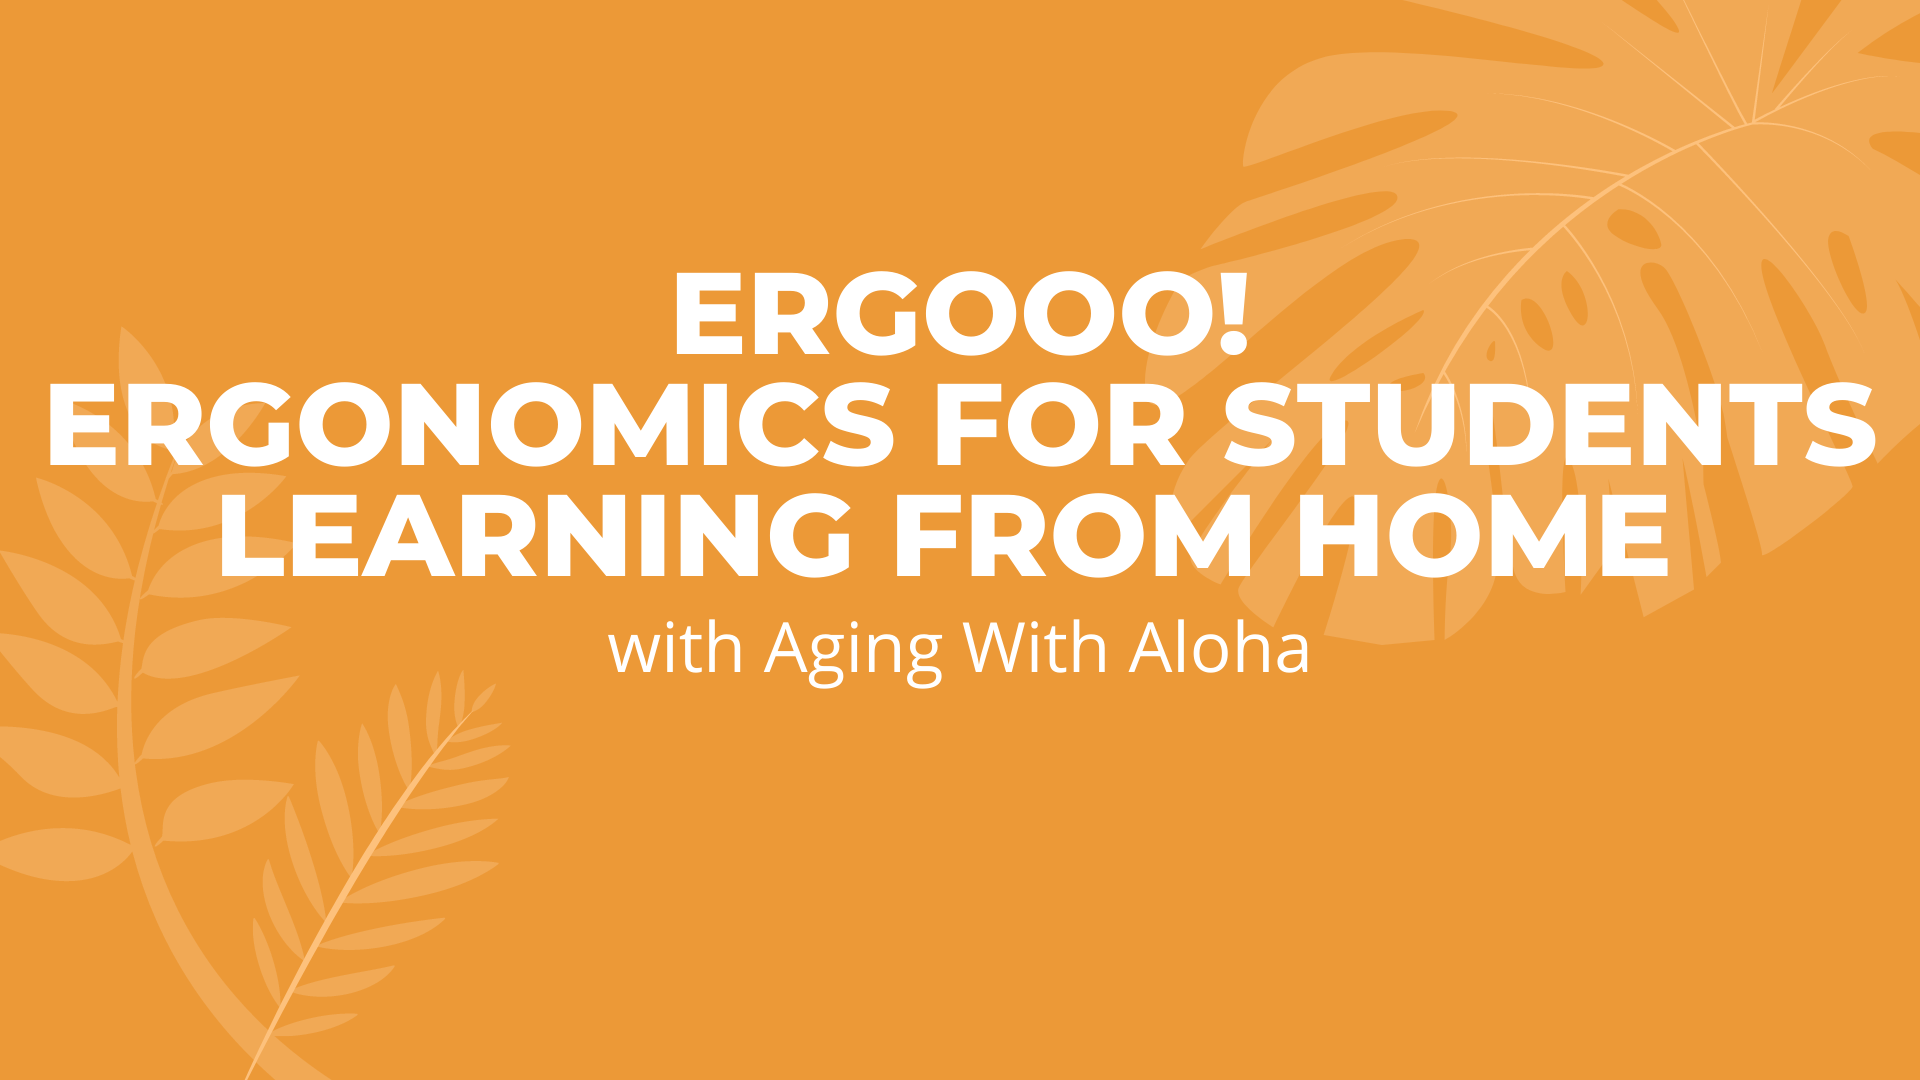 ER-GOOO Ergonomics for Students Learning from Home